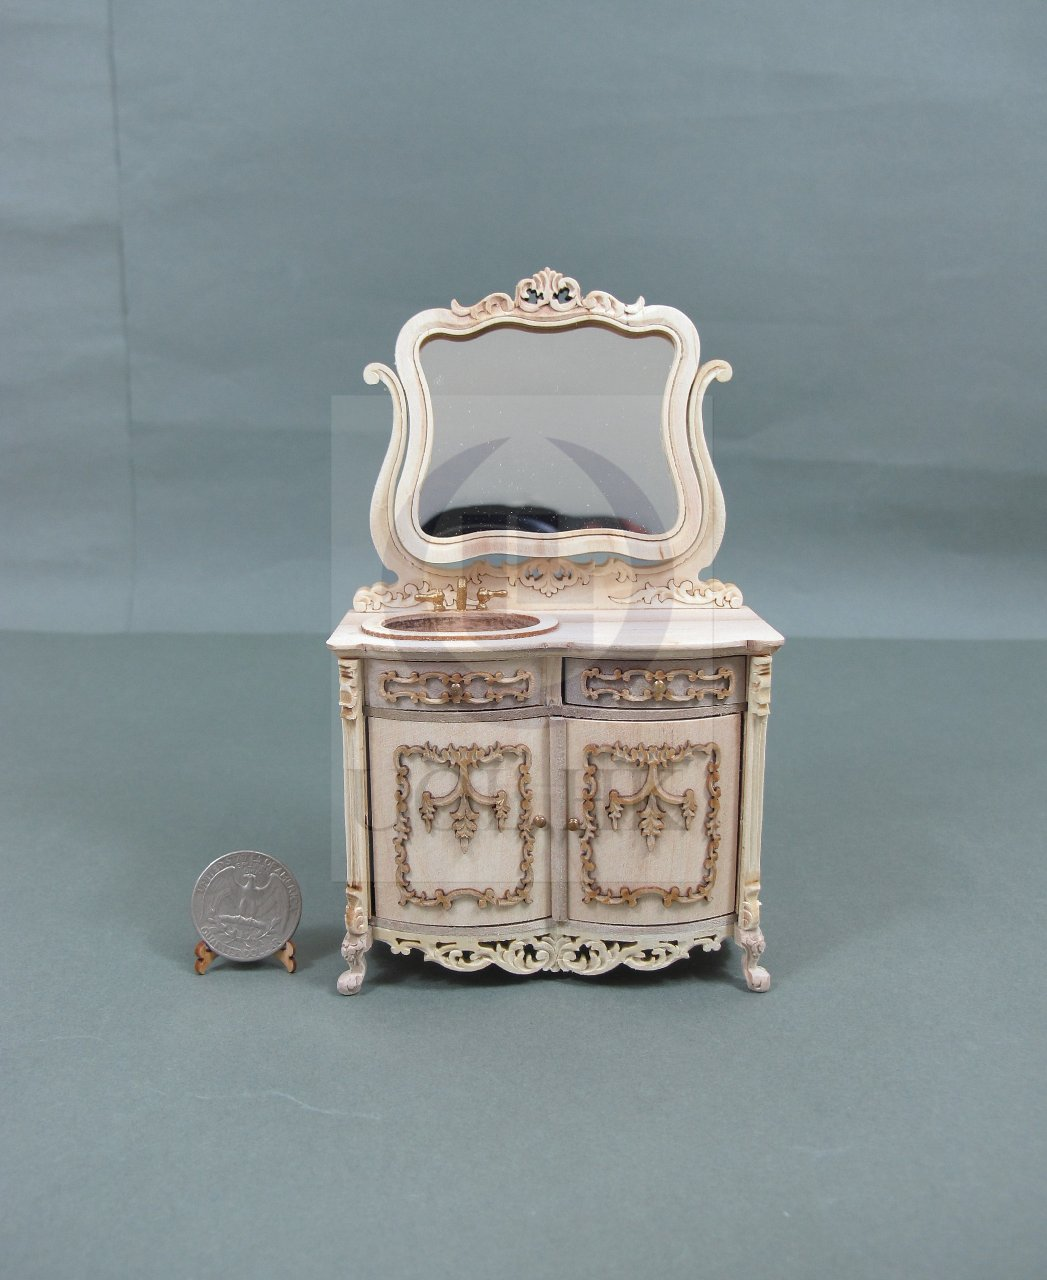 1:12 Scale Miniature Bathroom Vanity For Doll House[Unfinished]